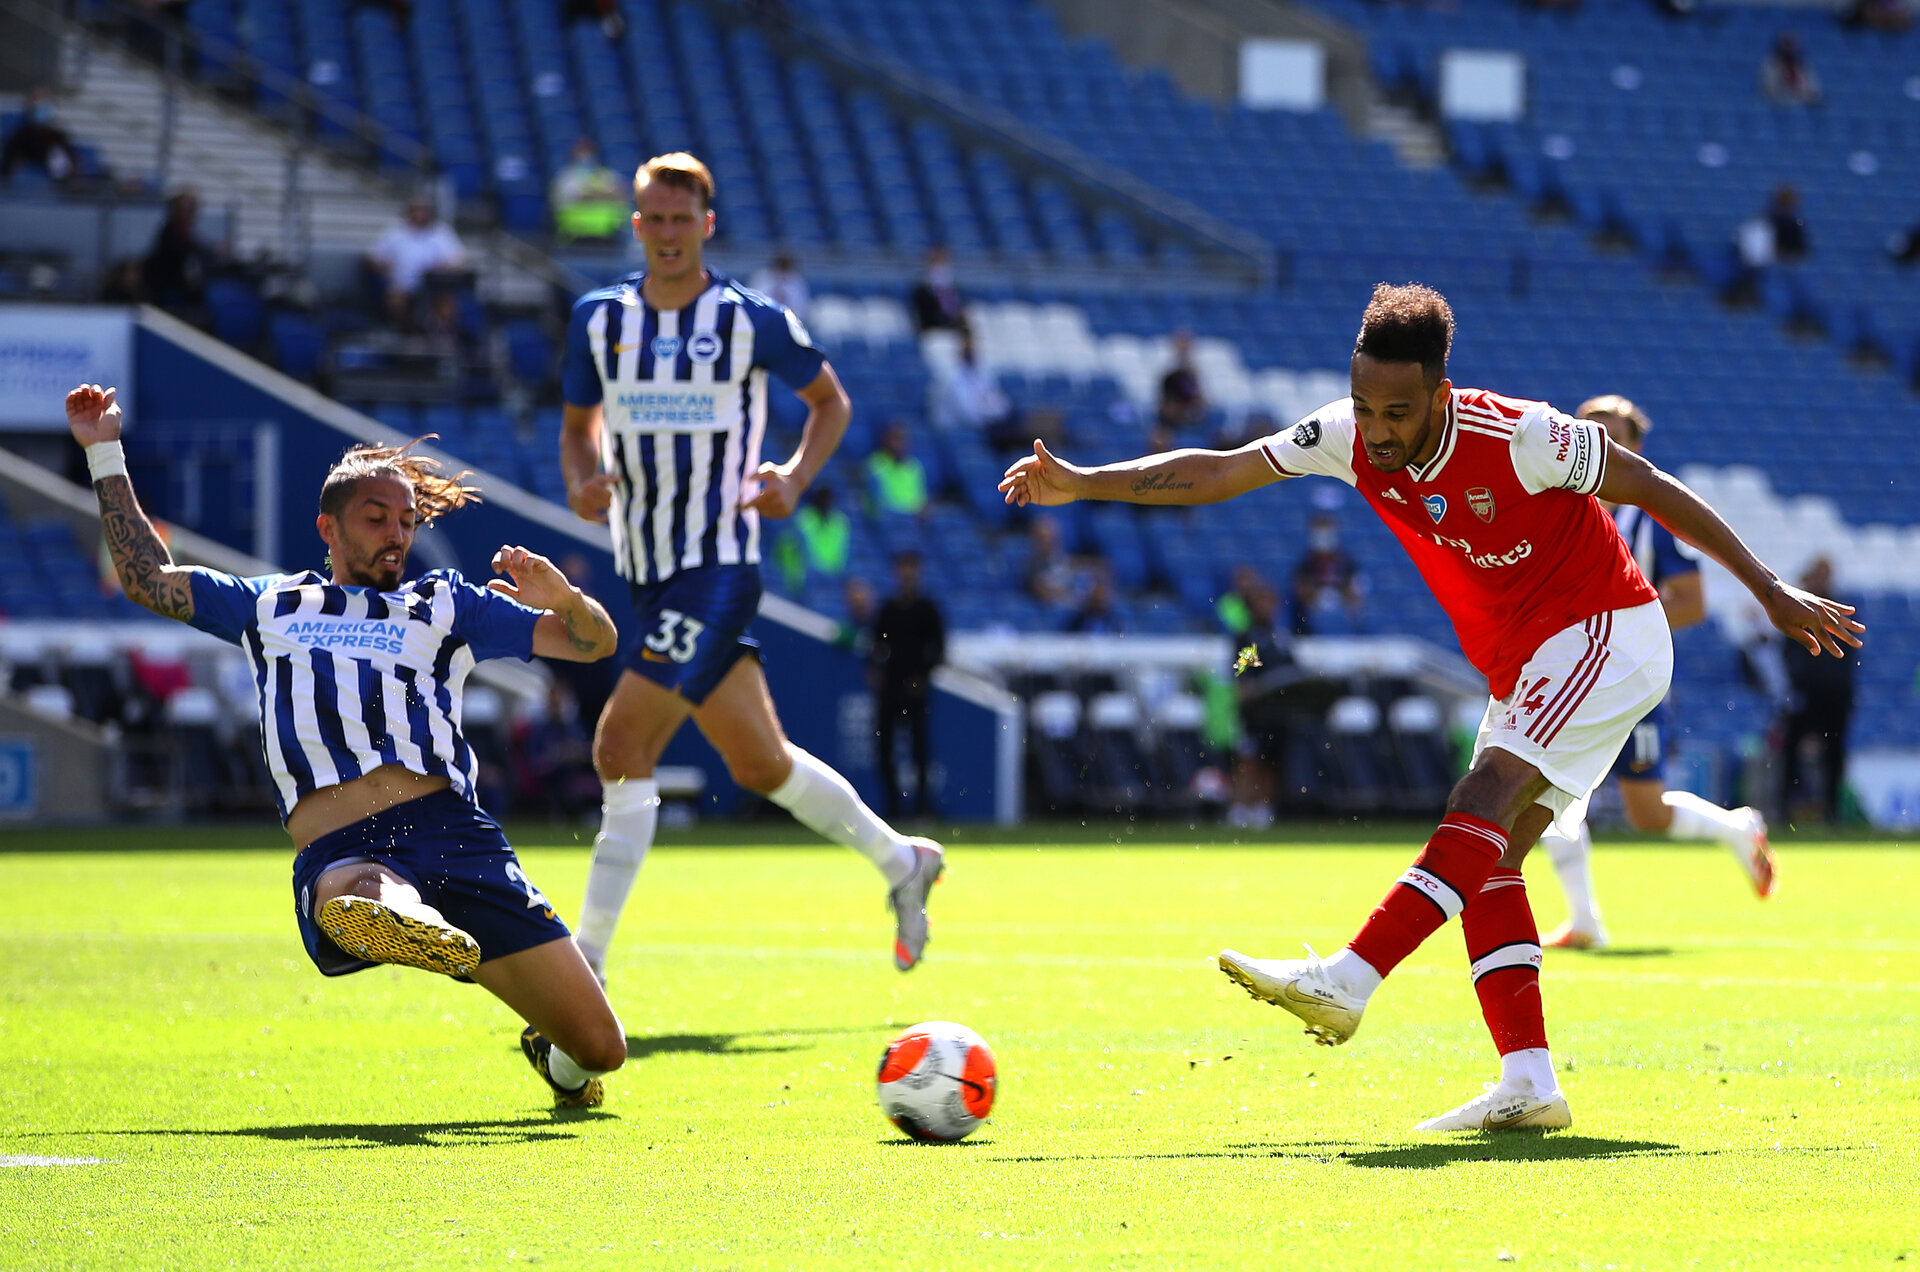 BRIGHTON, ENGLAND - JUNE 20: Pierre-Emerick Aubameyang of Arsenal shoots during the Premier League match between Brighton & Hove Albion and Arsenal FC at American Express Community Stadium on June 20, 2020 in Brighton, England. Football Stadiums around Europe remain empty due to the Coronavirus Pandemic as Government social distancing laws prohibit fans inside venues resulting in all fixtures being played behind closed doors. (Photo by Richard Heathcote/Getty Images)